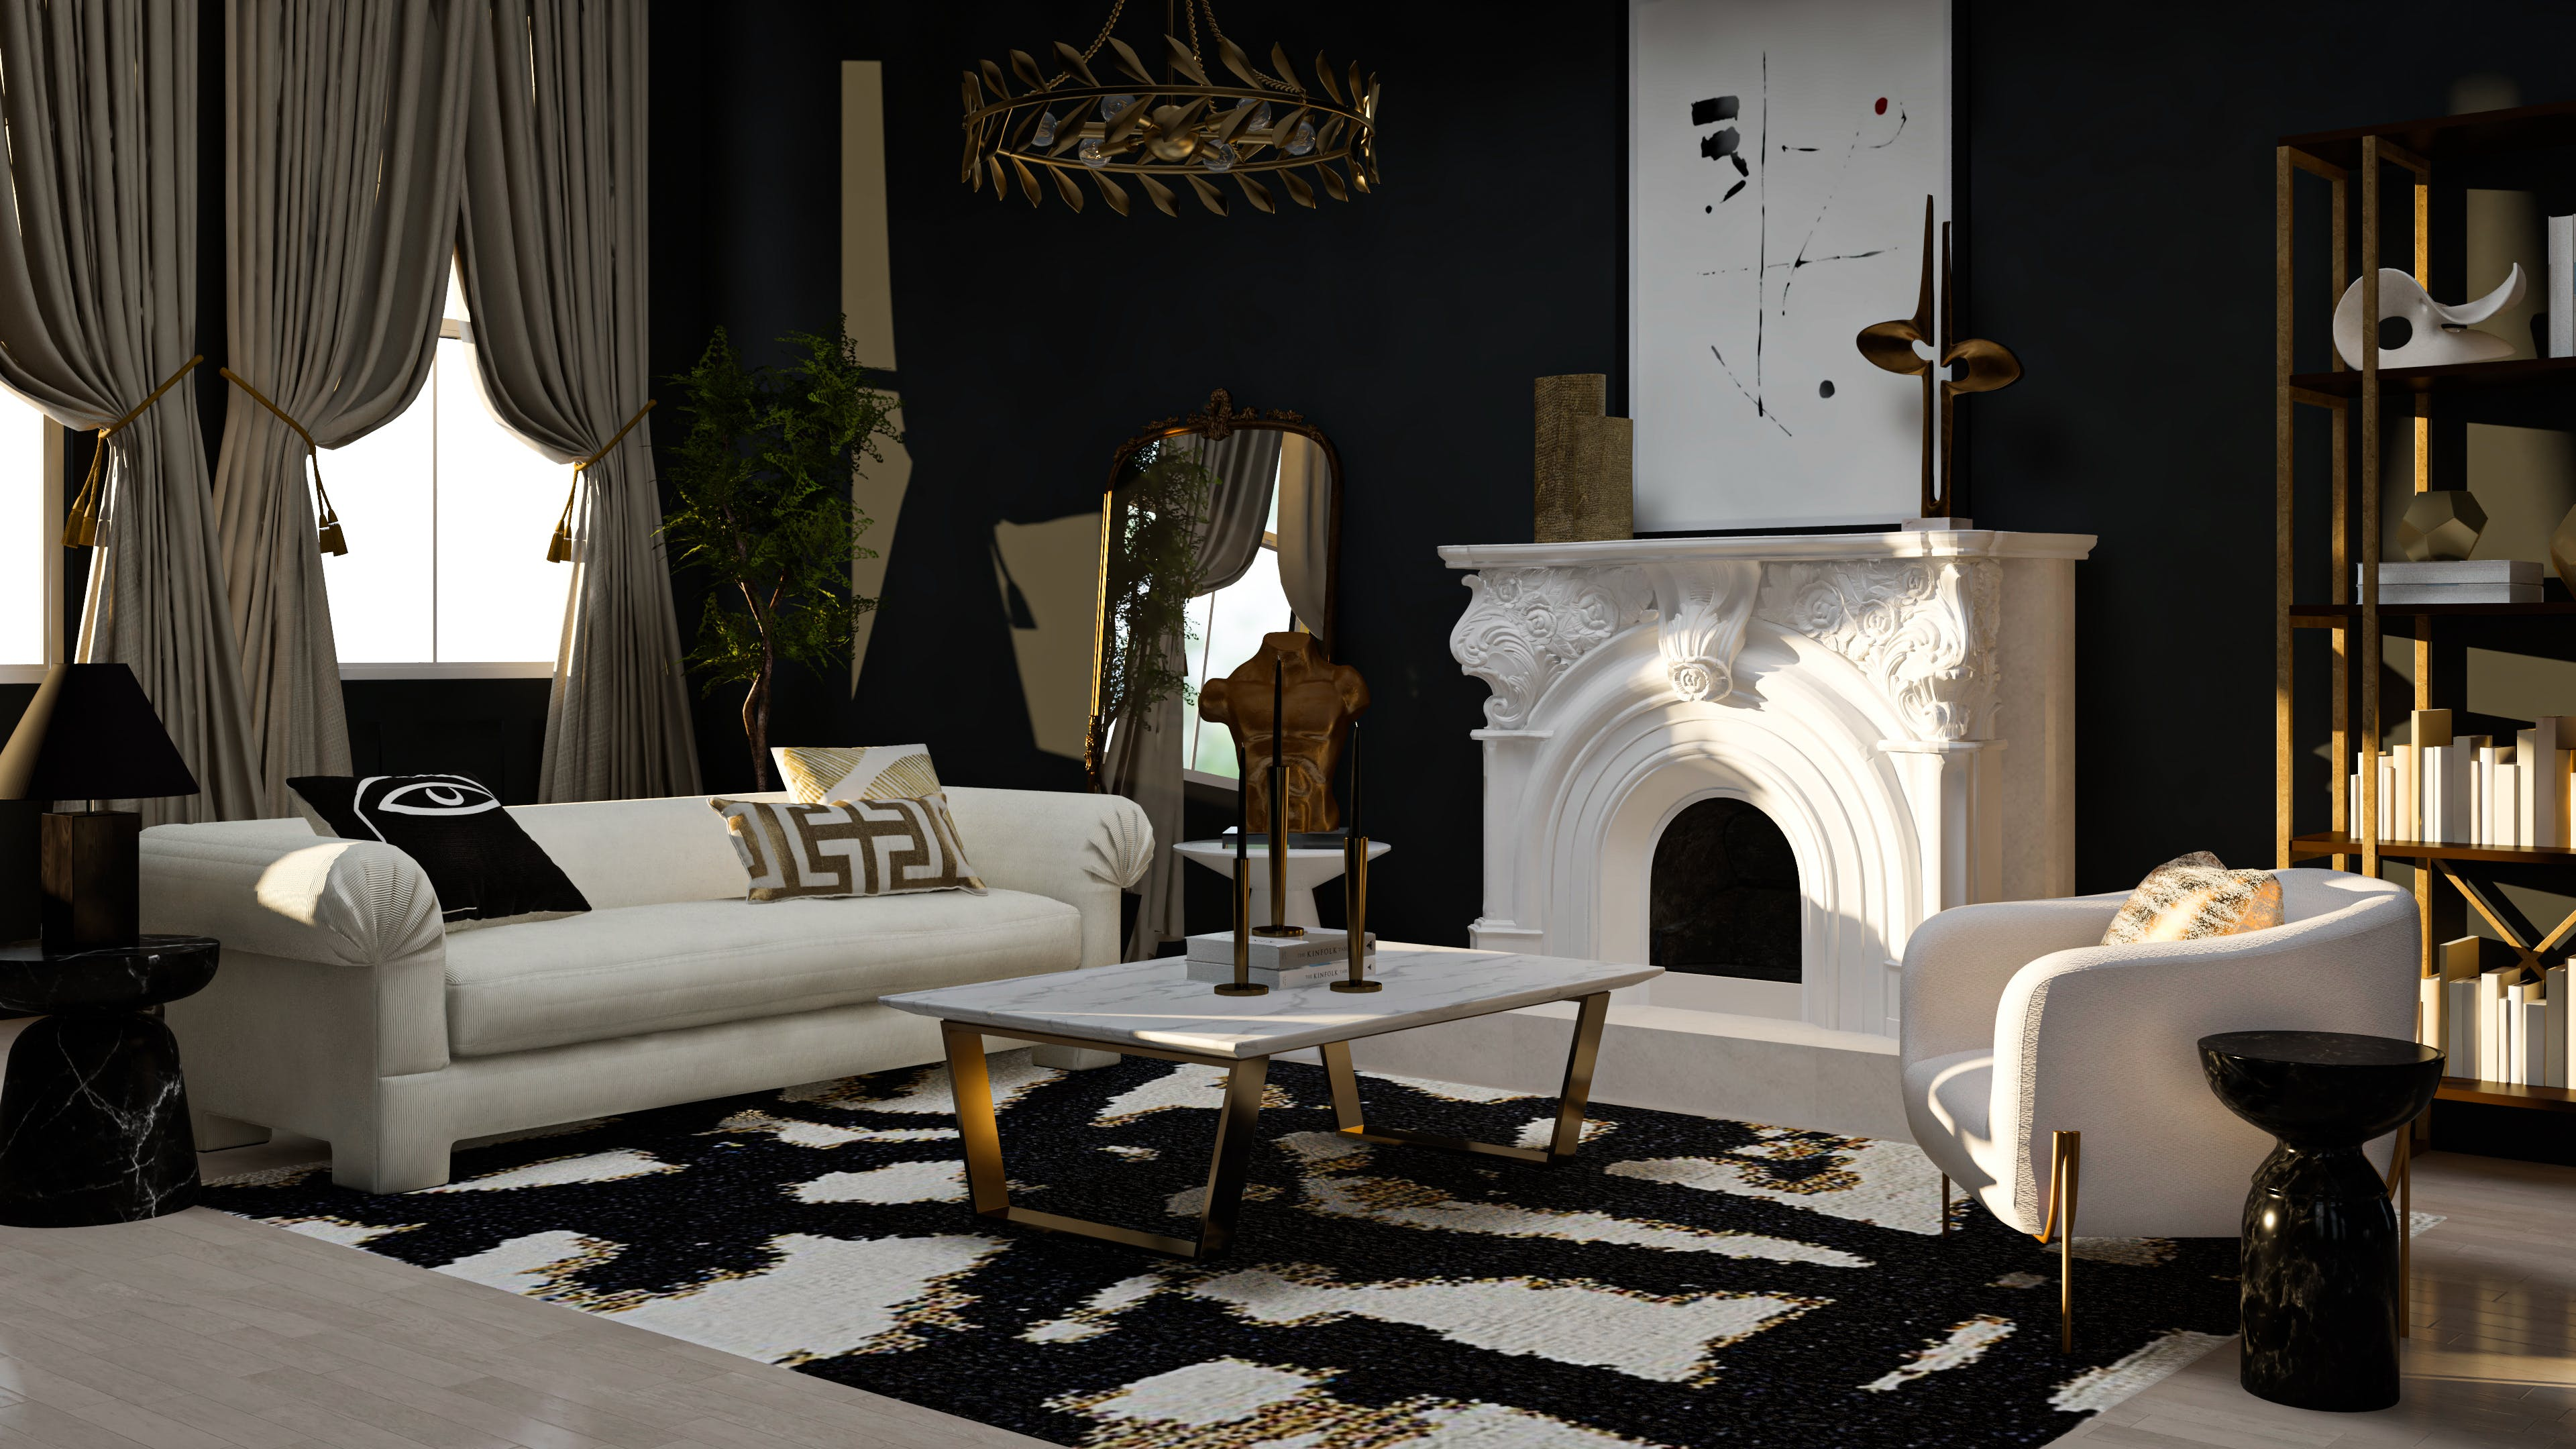 A Glam Living Room Of Black And Gold Dreams